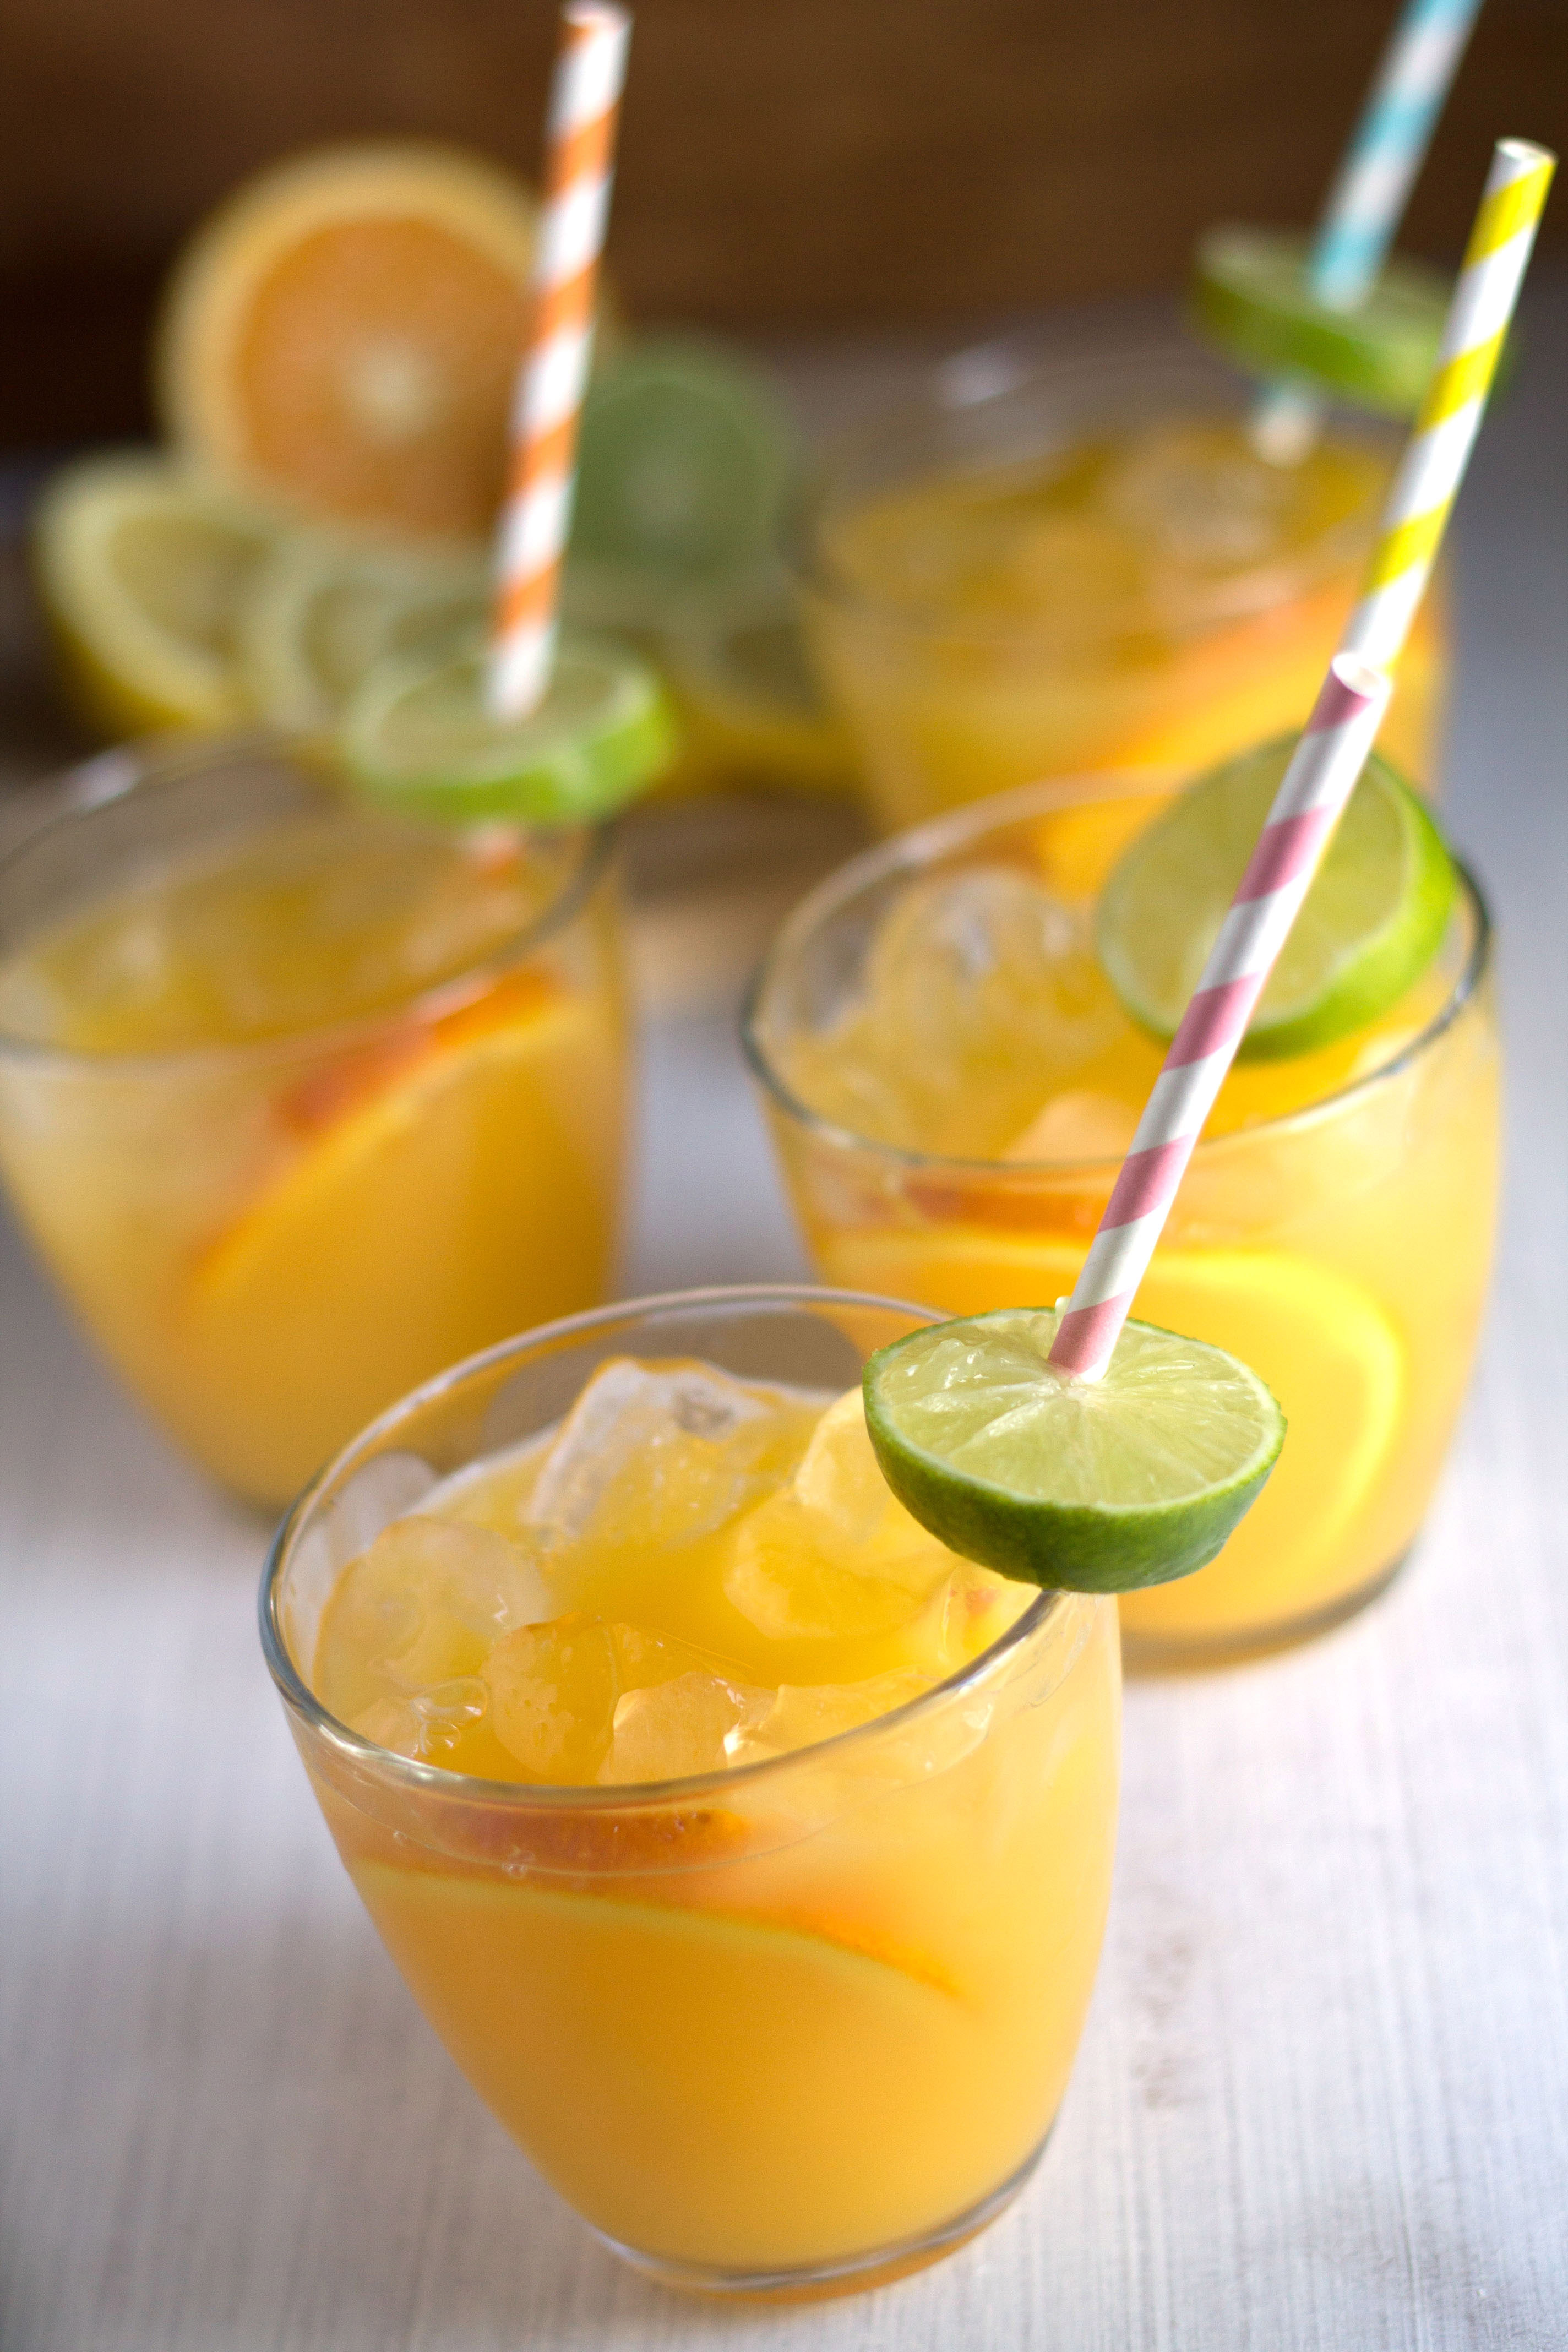 20 New Years Eve Drink Recipes For Kids